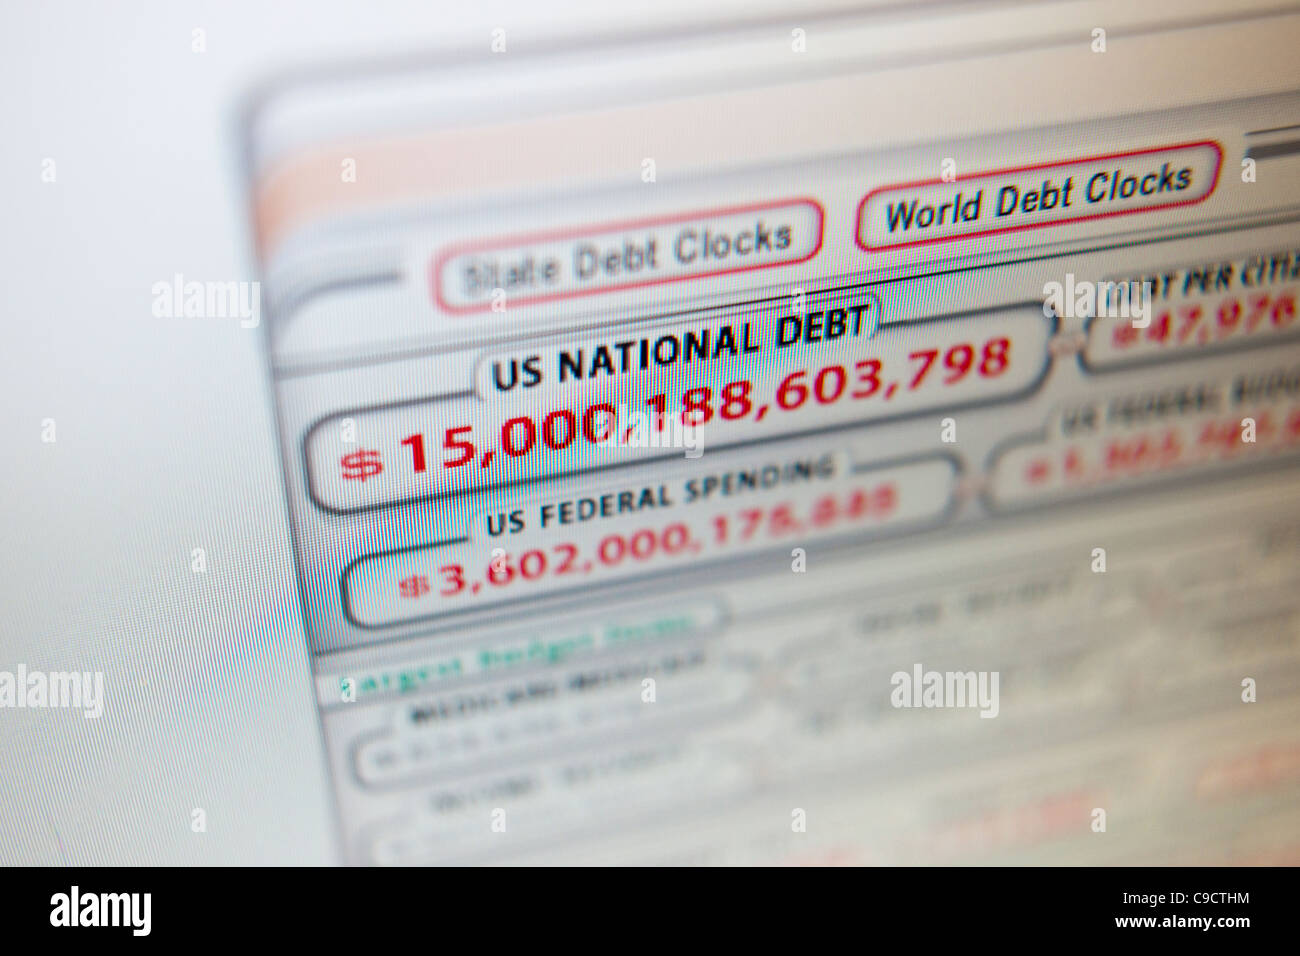 The US national debt of over $15 trillion is shown on a clock on a website - Stock Image